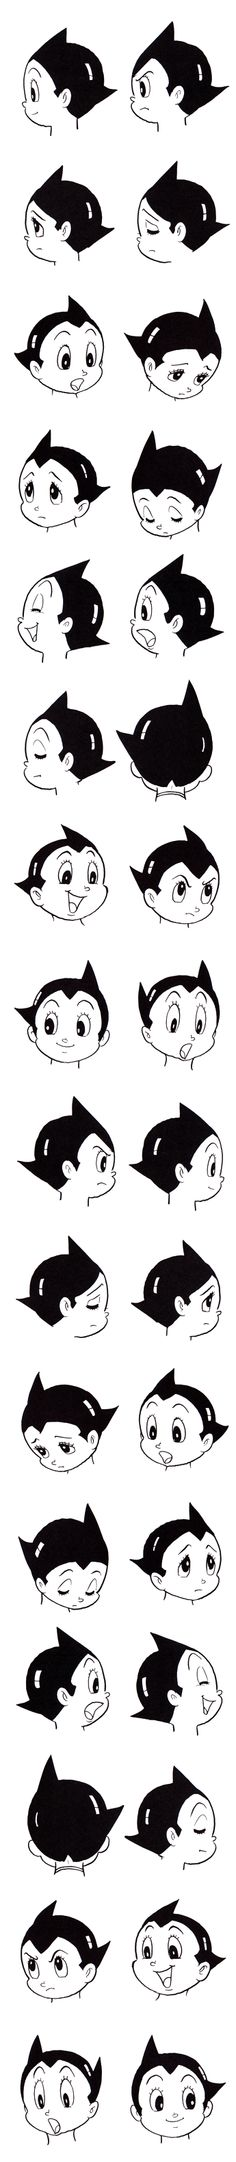 """""""Astro Boy 鉄腕アトム"""" by 手塚 治虫 Osamu Tezuka*  • Blog/Info 